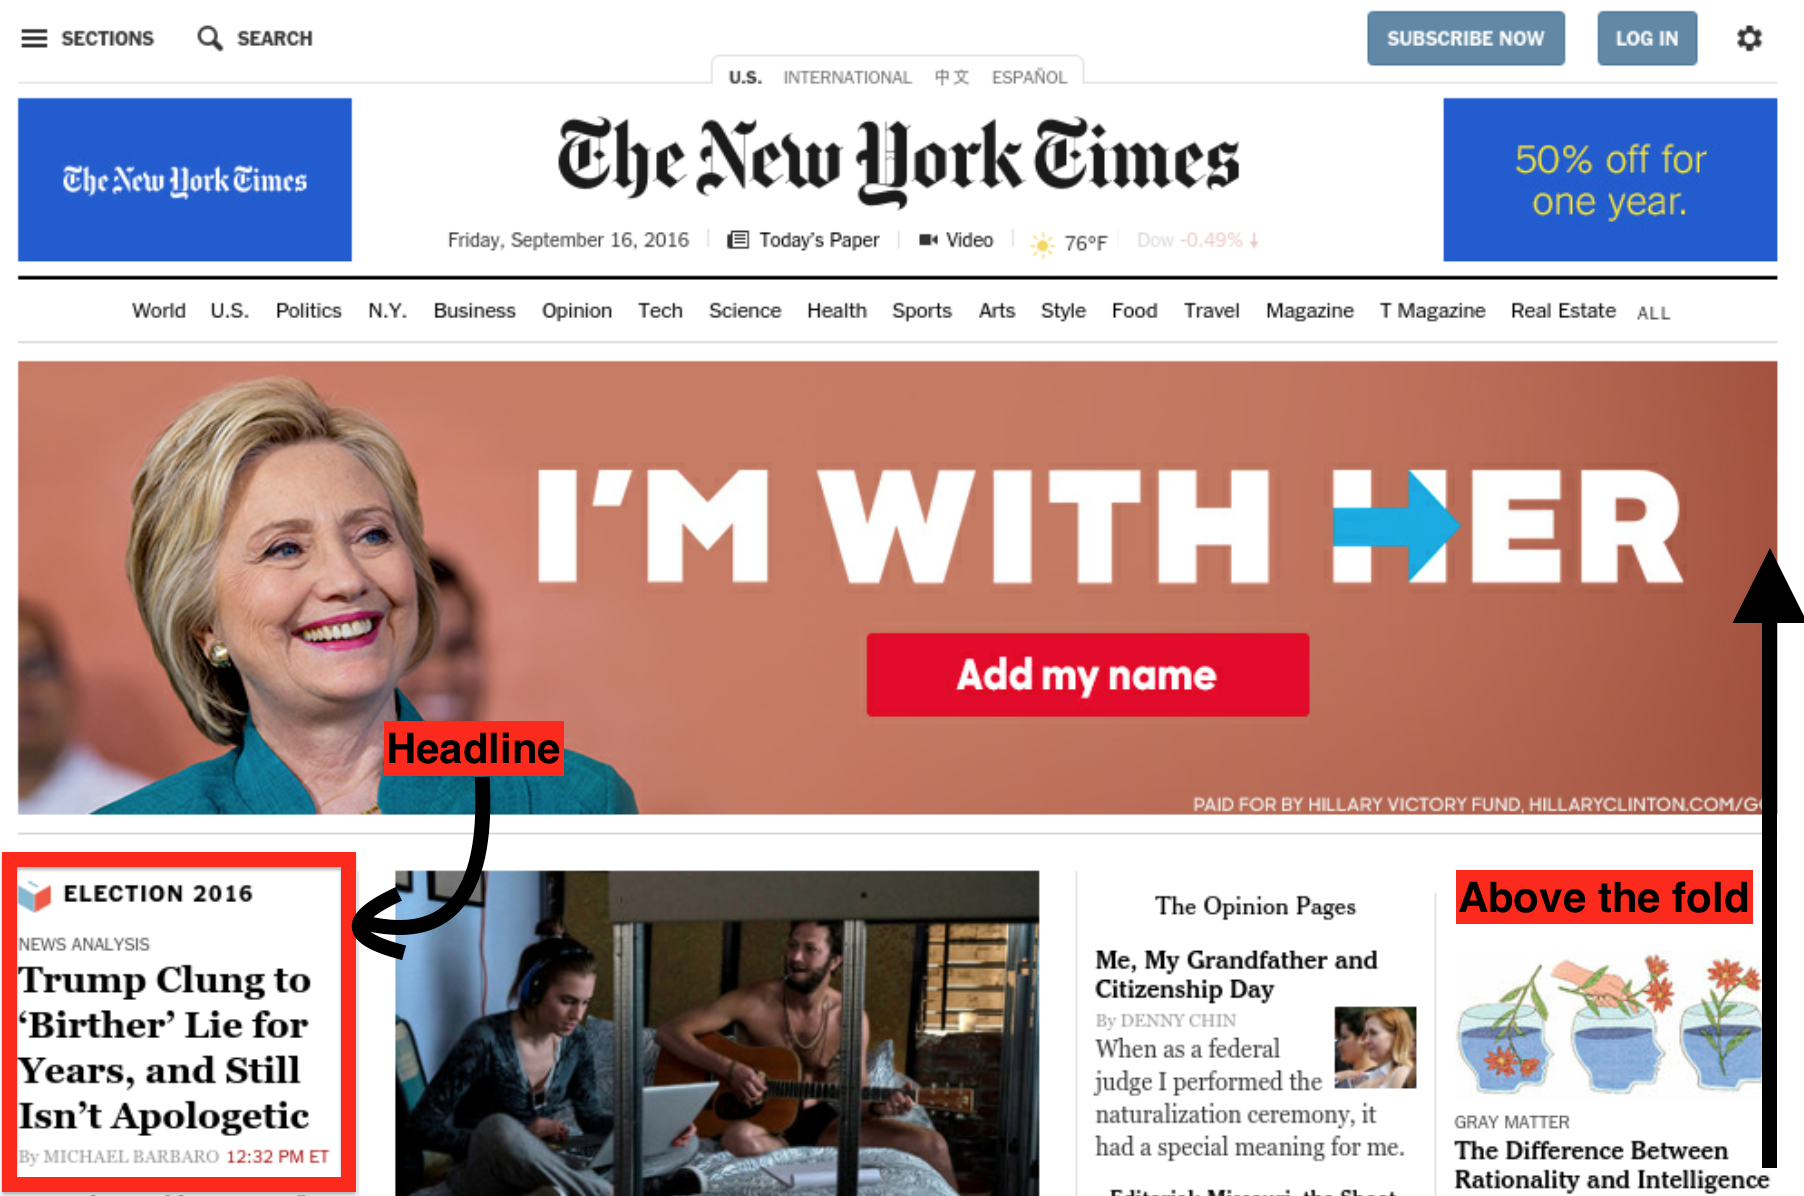 Example NYT screenshot from September 16th